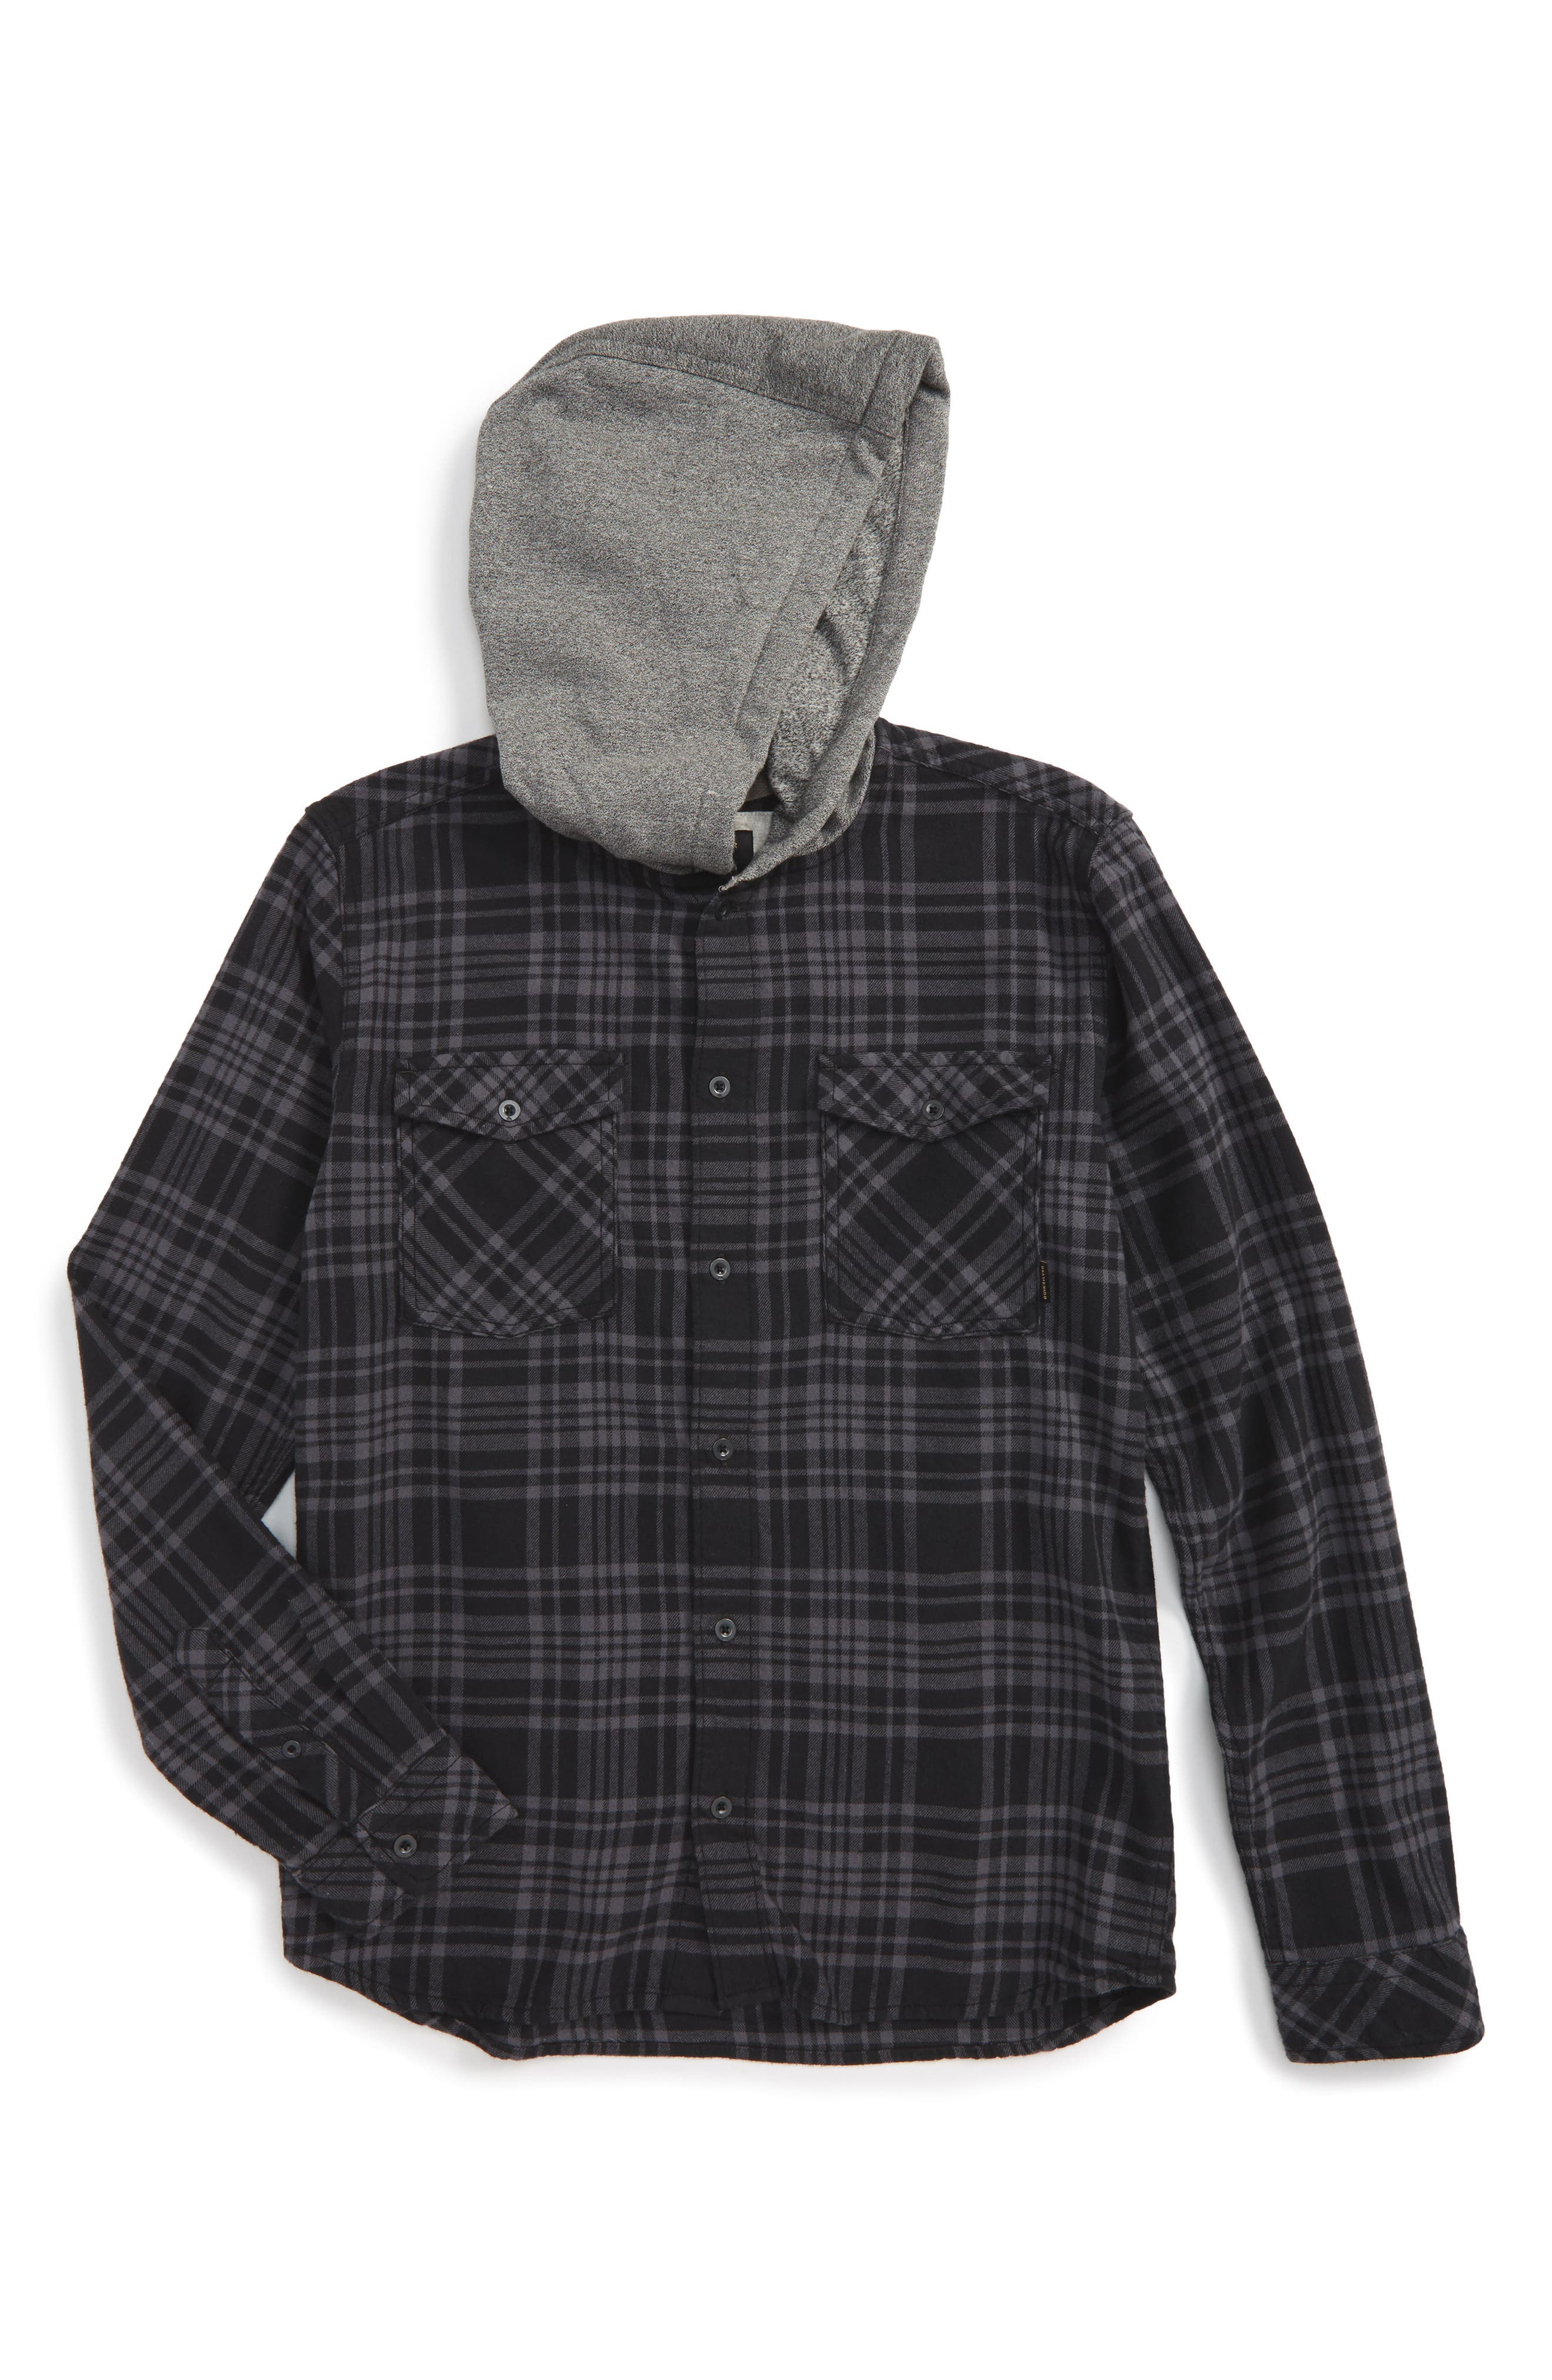 Main Image - Quiksilver Hooded Plaid Woven Shirt (Toddler Boys, Little Boys & Big Boys)